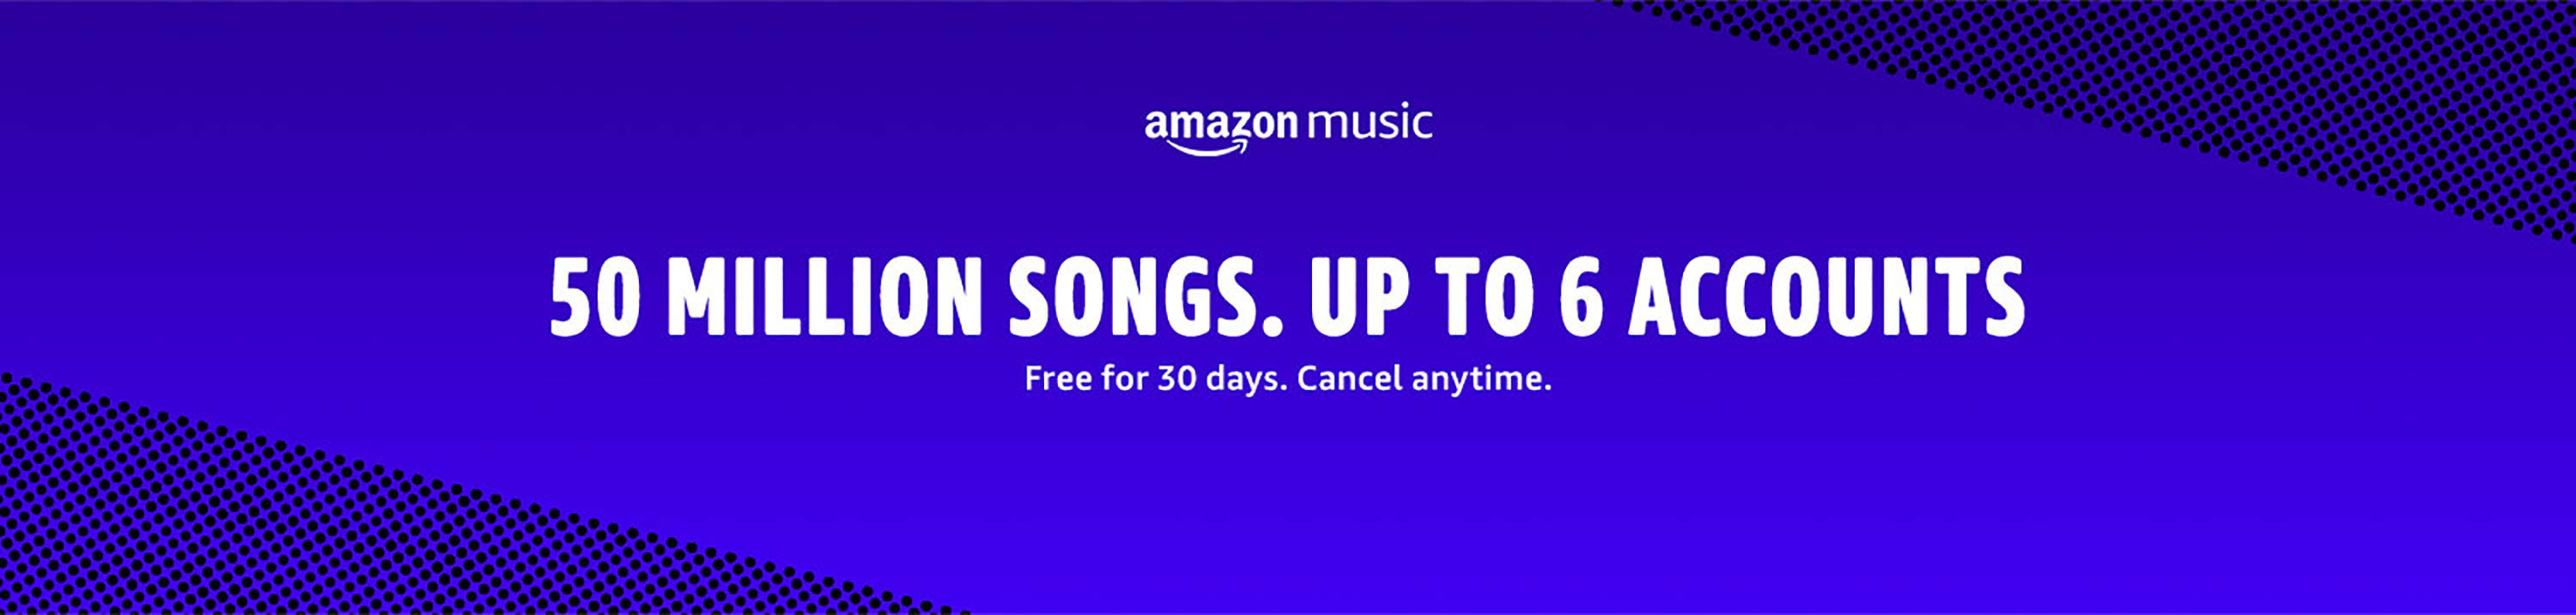 Amazon Music Unlimited. Unlimited access to 50 million songs. Up to 6 lines.